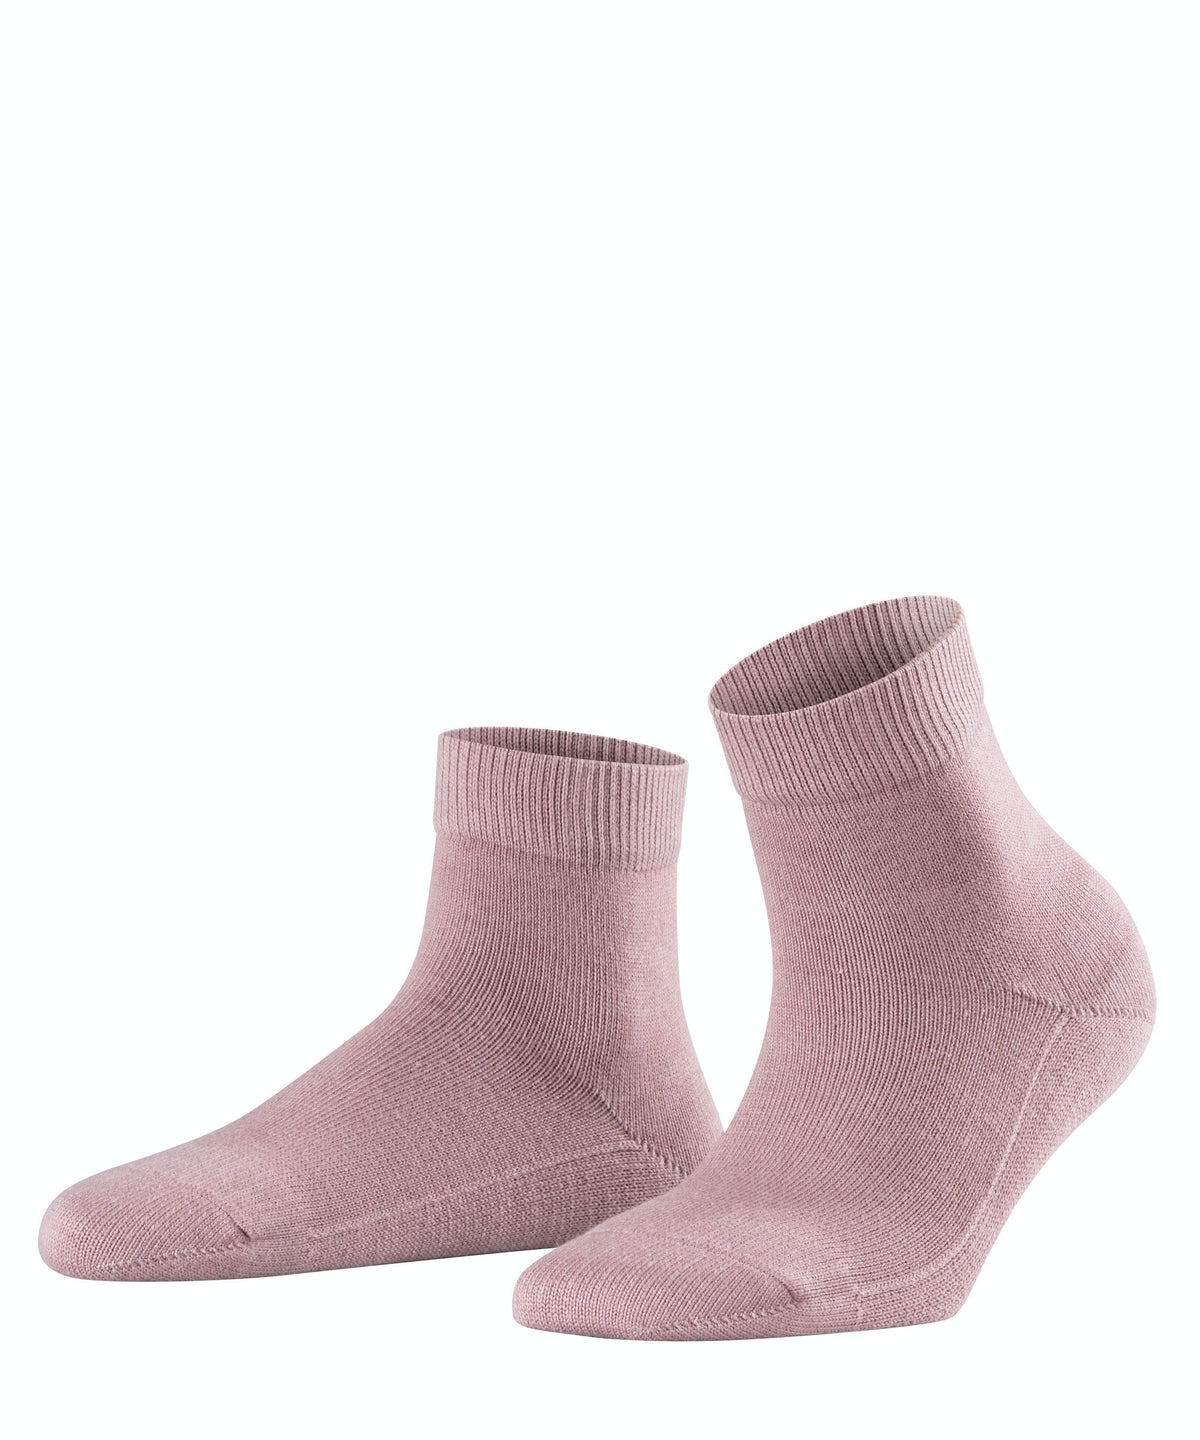 FALKE Light Cuddle Pads Women's Socks